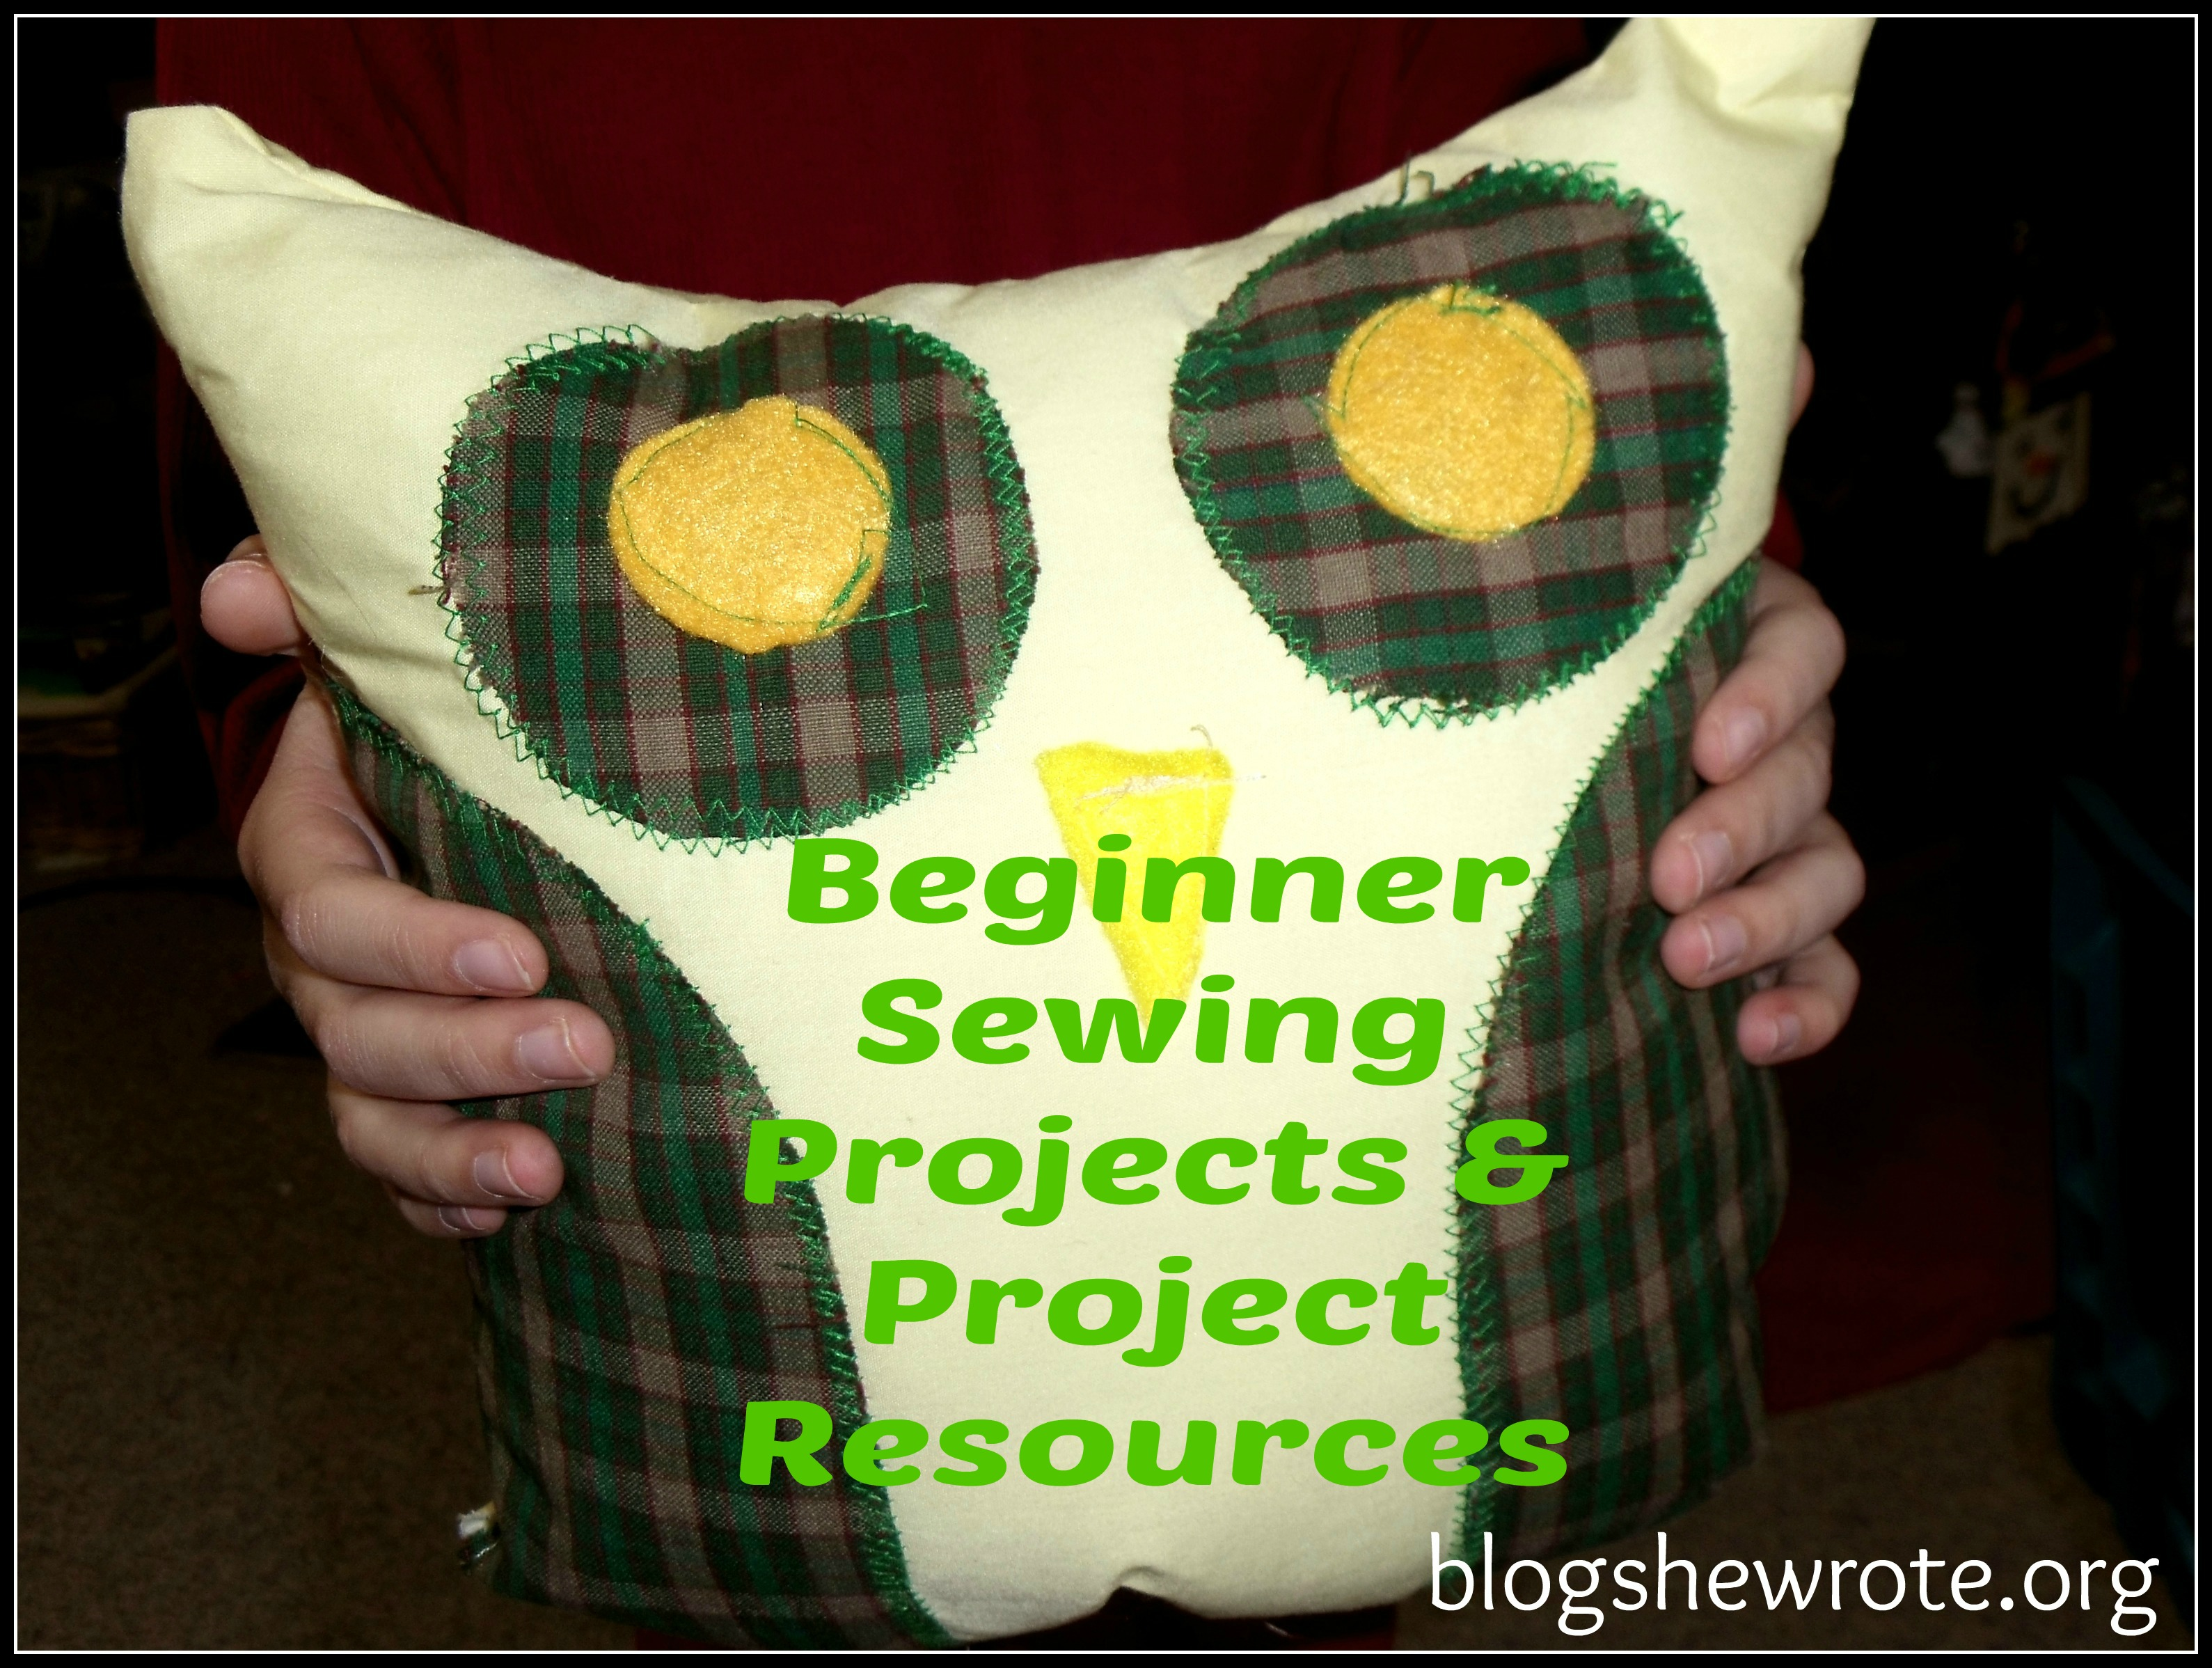 Blog She Wrote: Beginner Projects & Project Resources